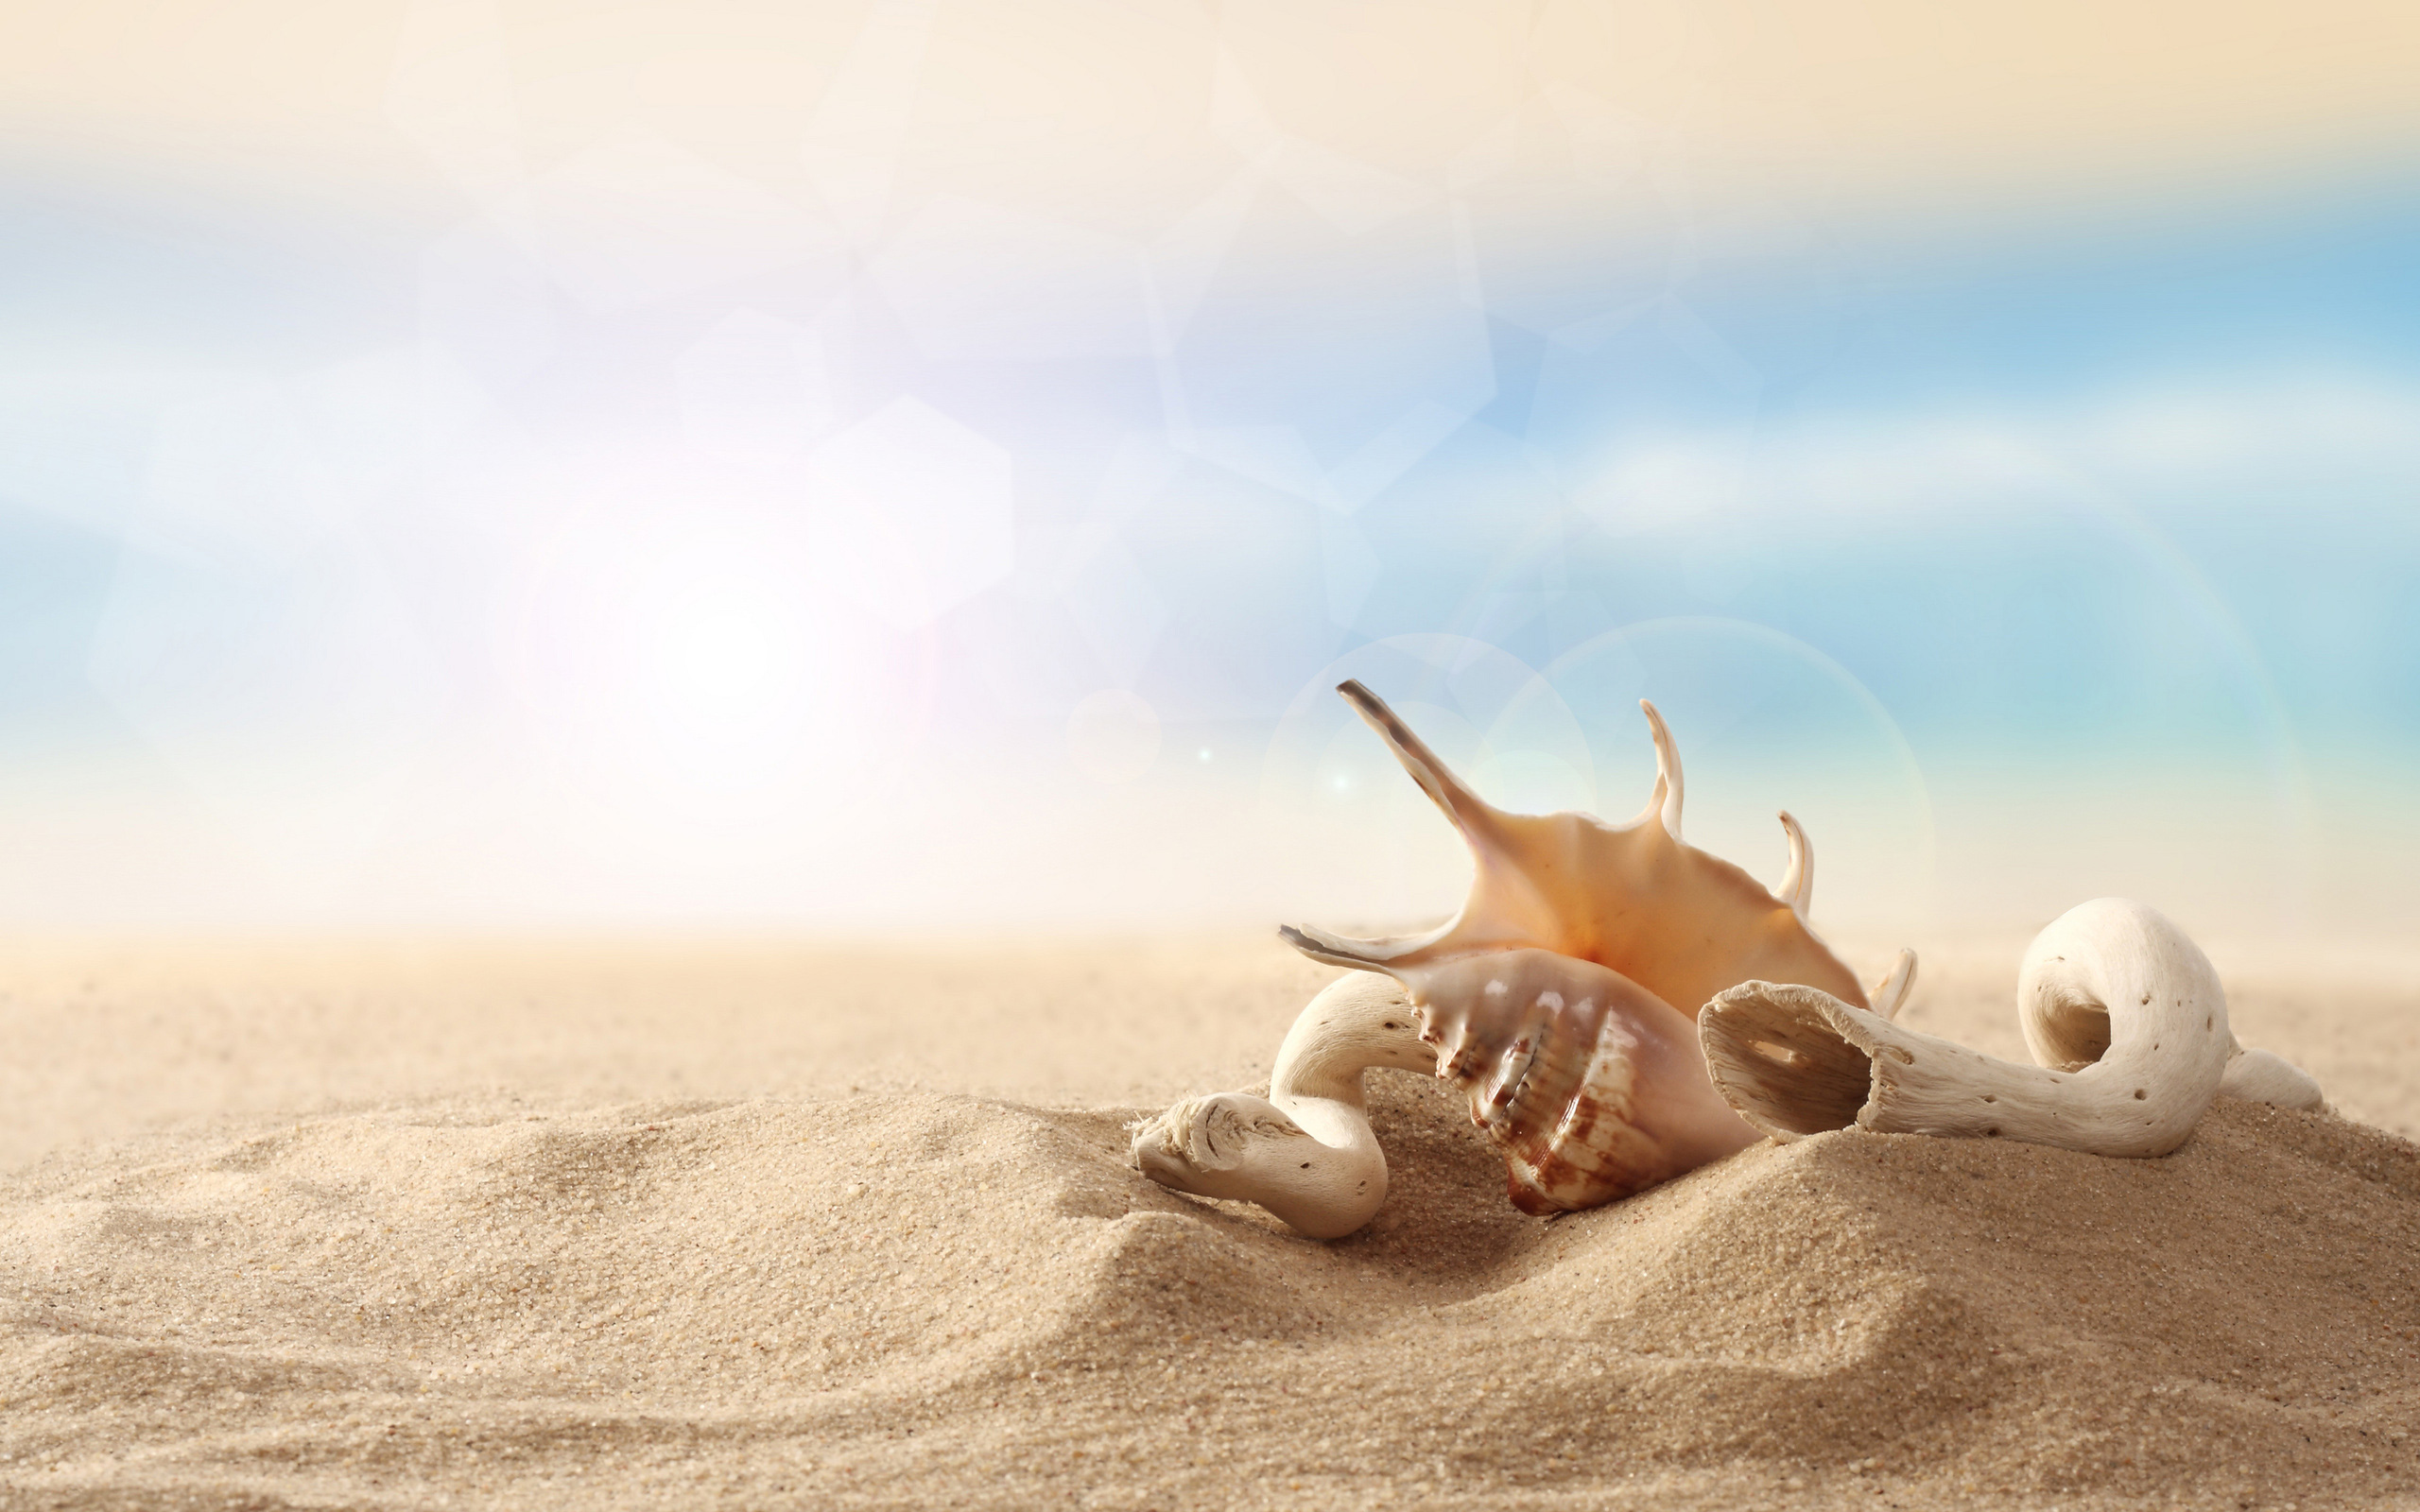 seashell wallpaper 25196